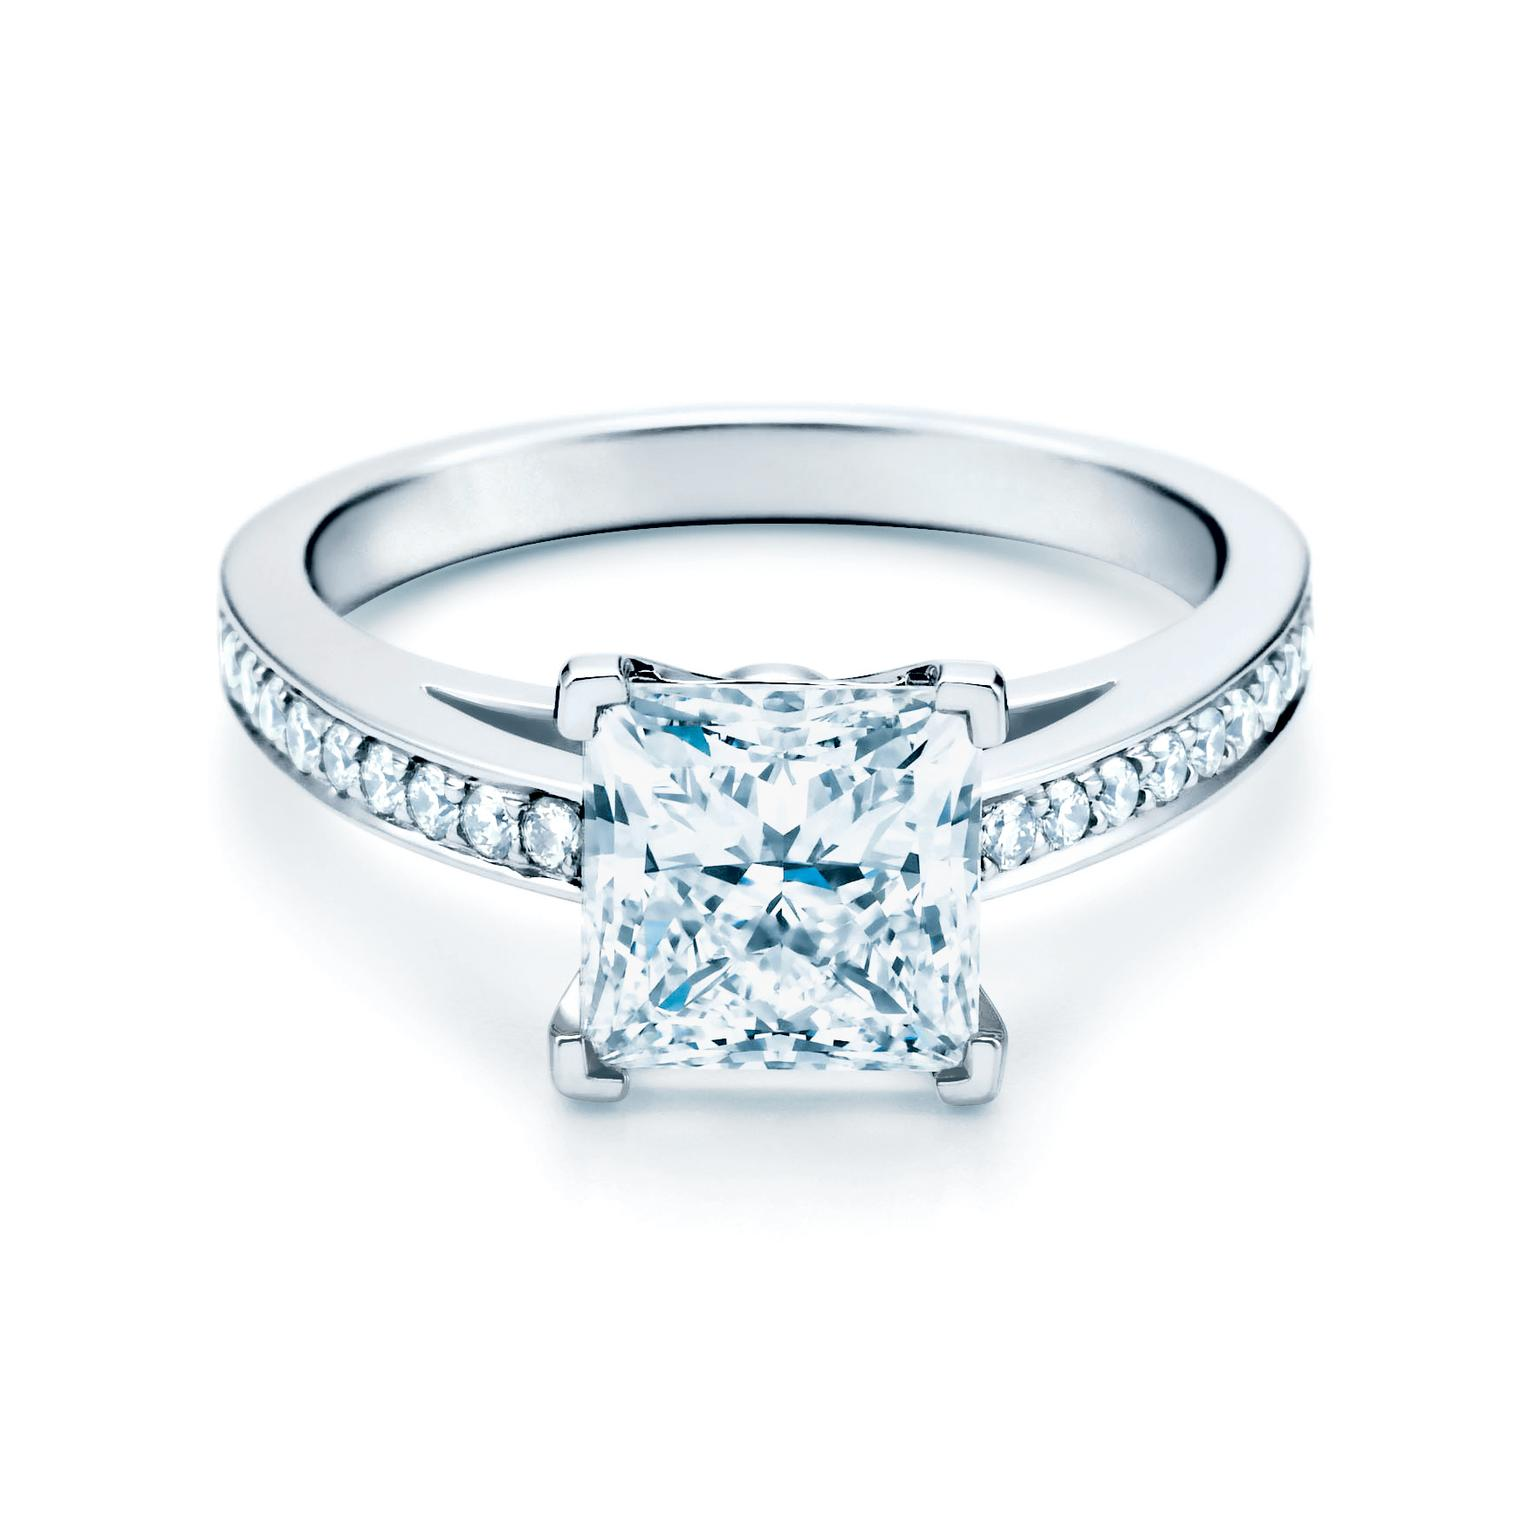 Tiffany Weddings Rings Grace Princess Cut Diamond Engagement Ring Tiffany Co